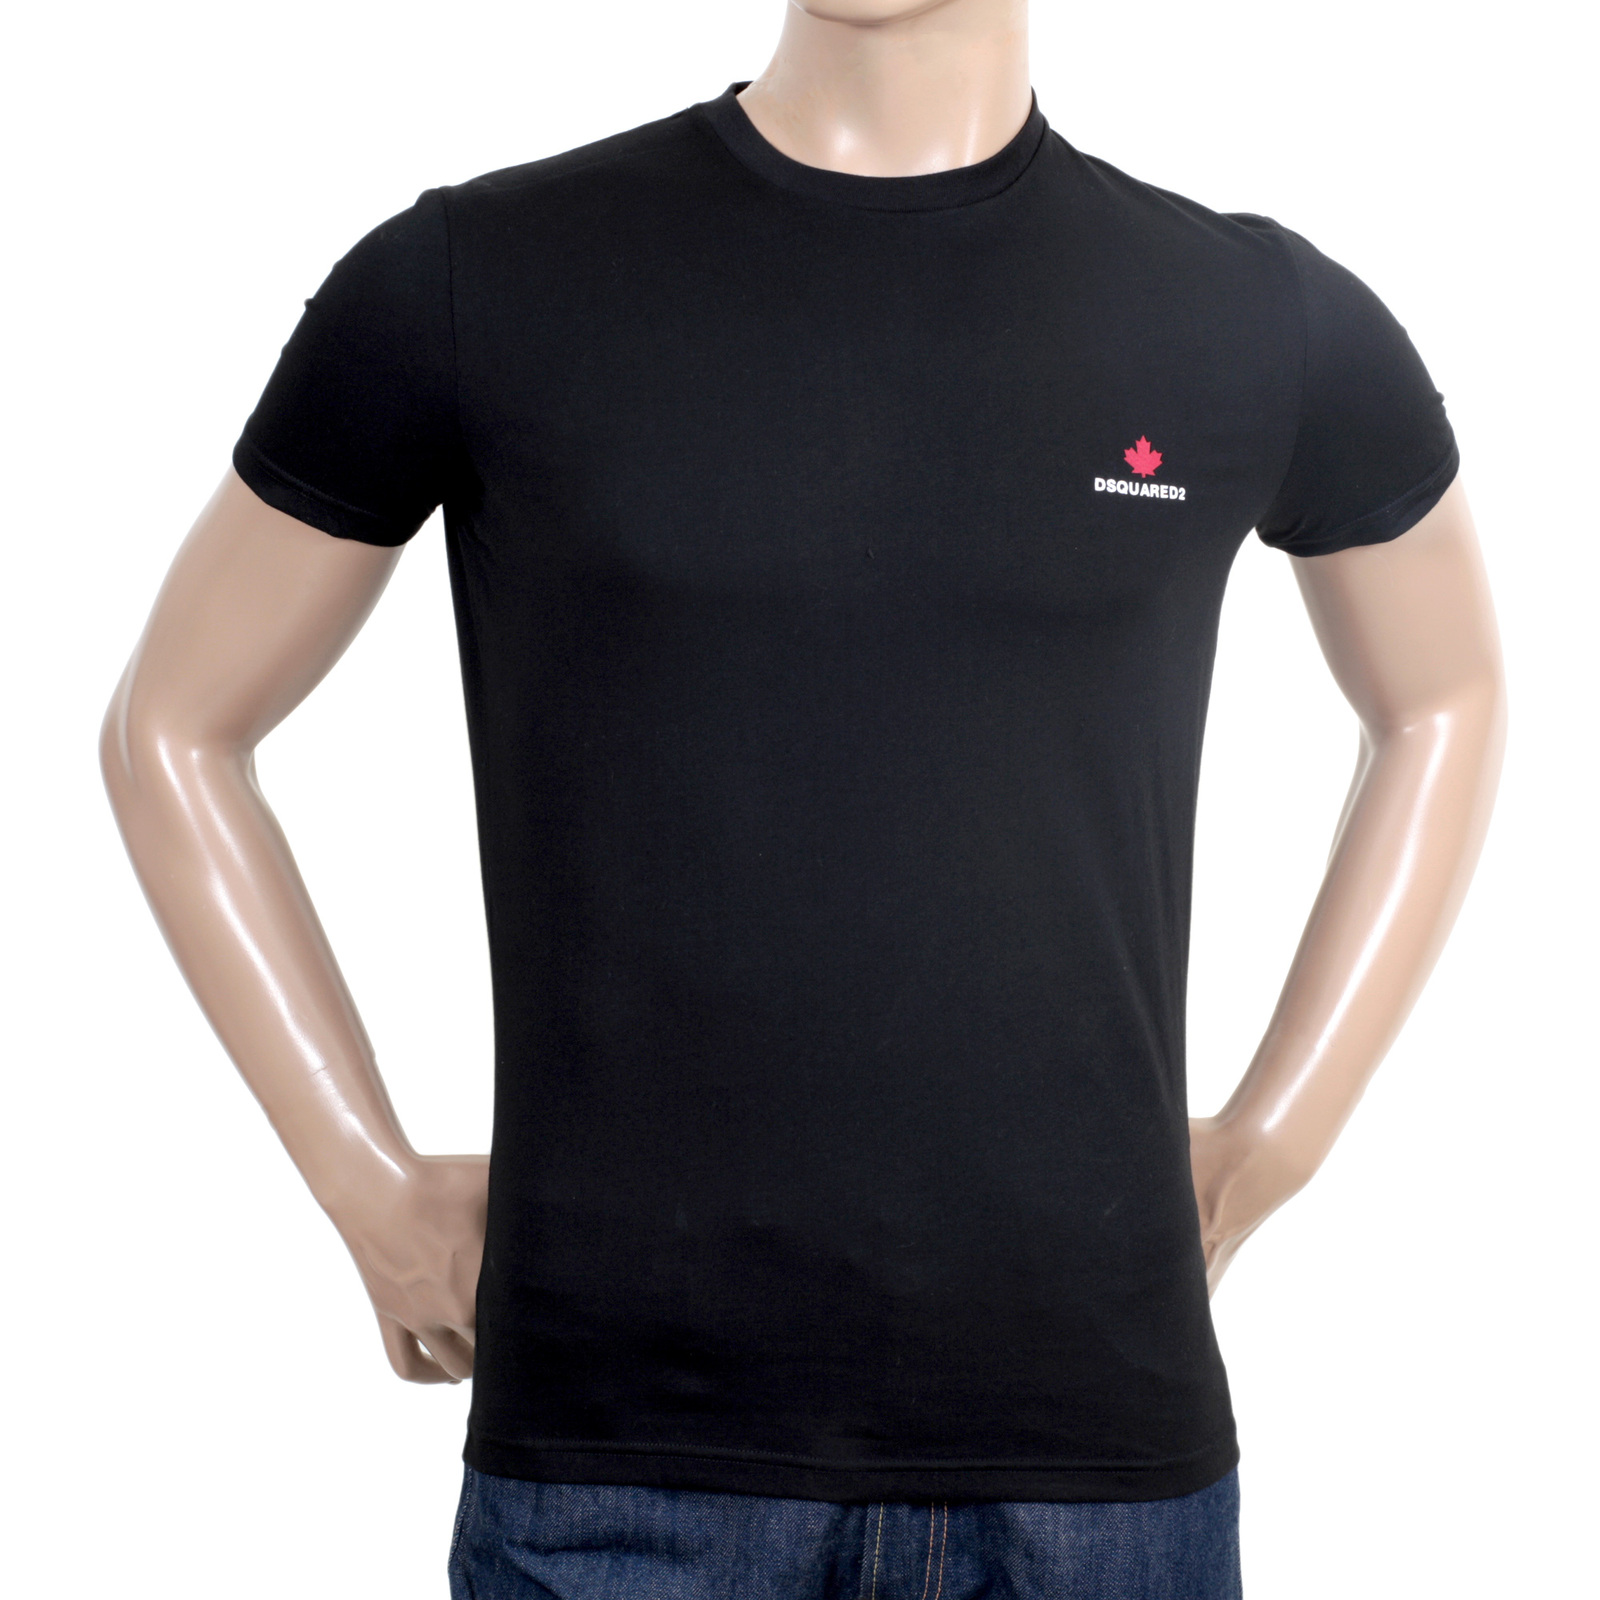 shop for mens regular fit black t shirt from dsquared2. Black Bedroom Furniture Sets. Home Design Ideas